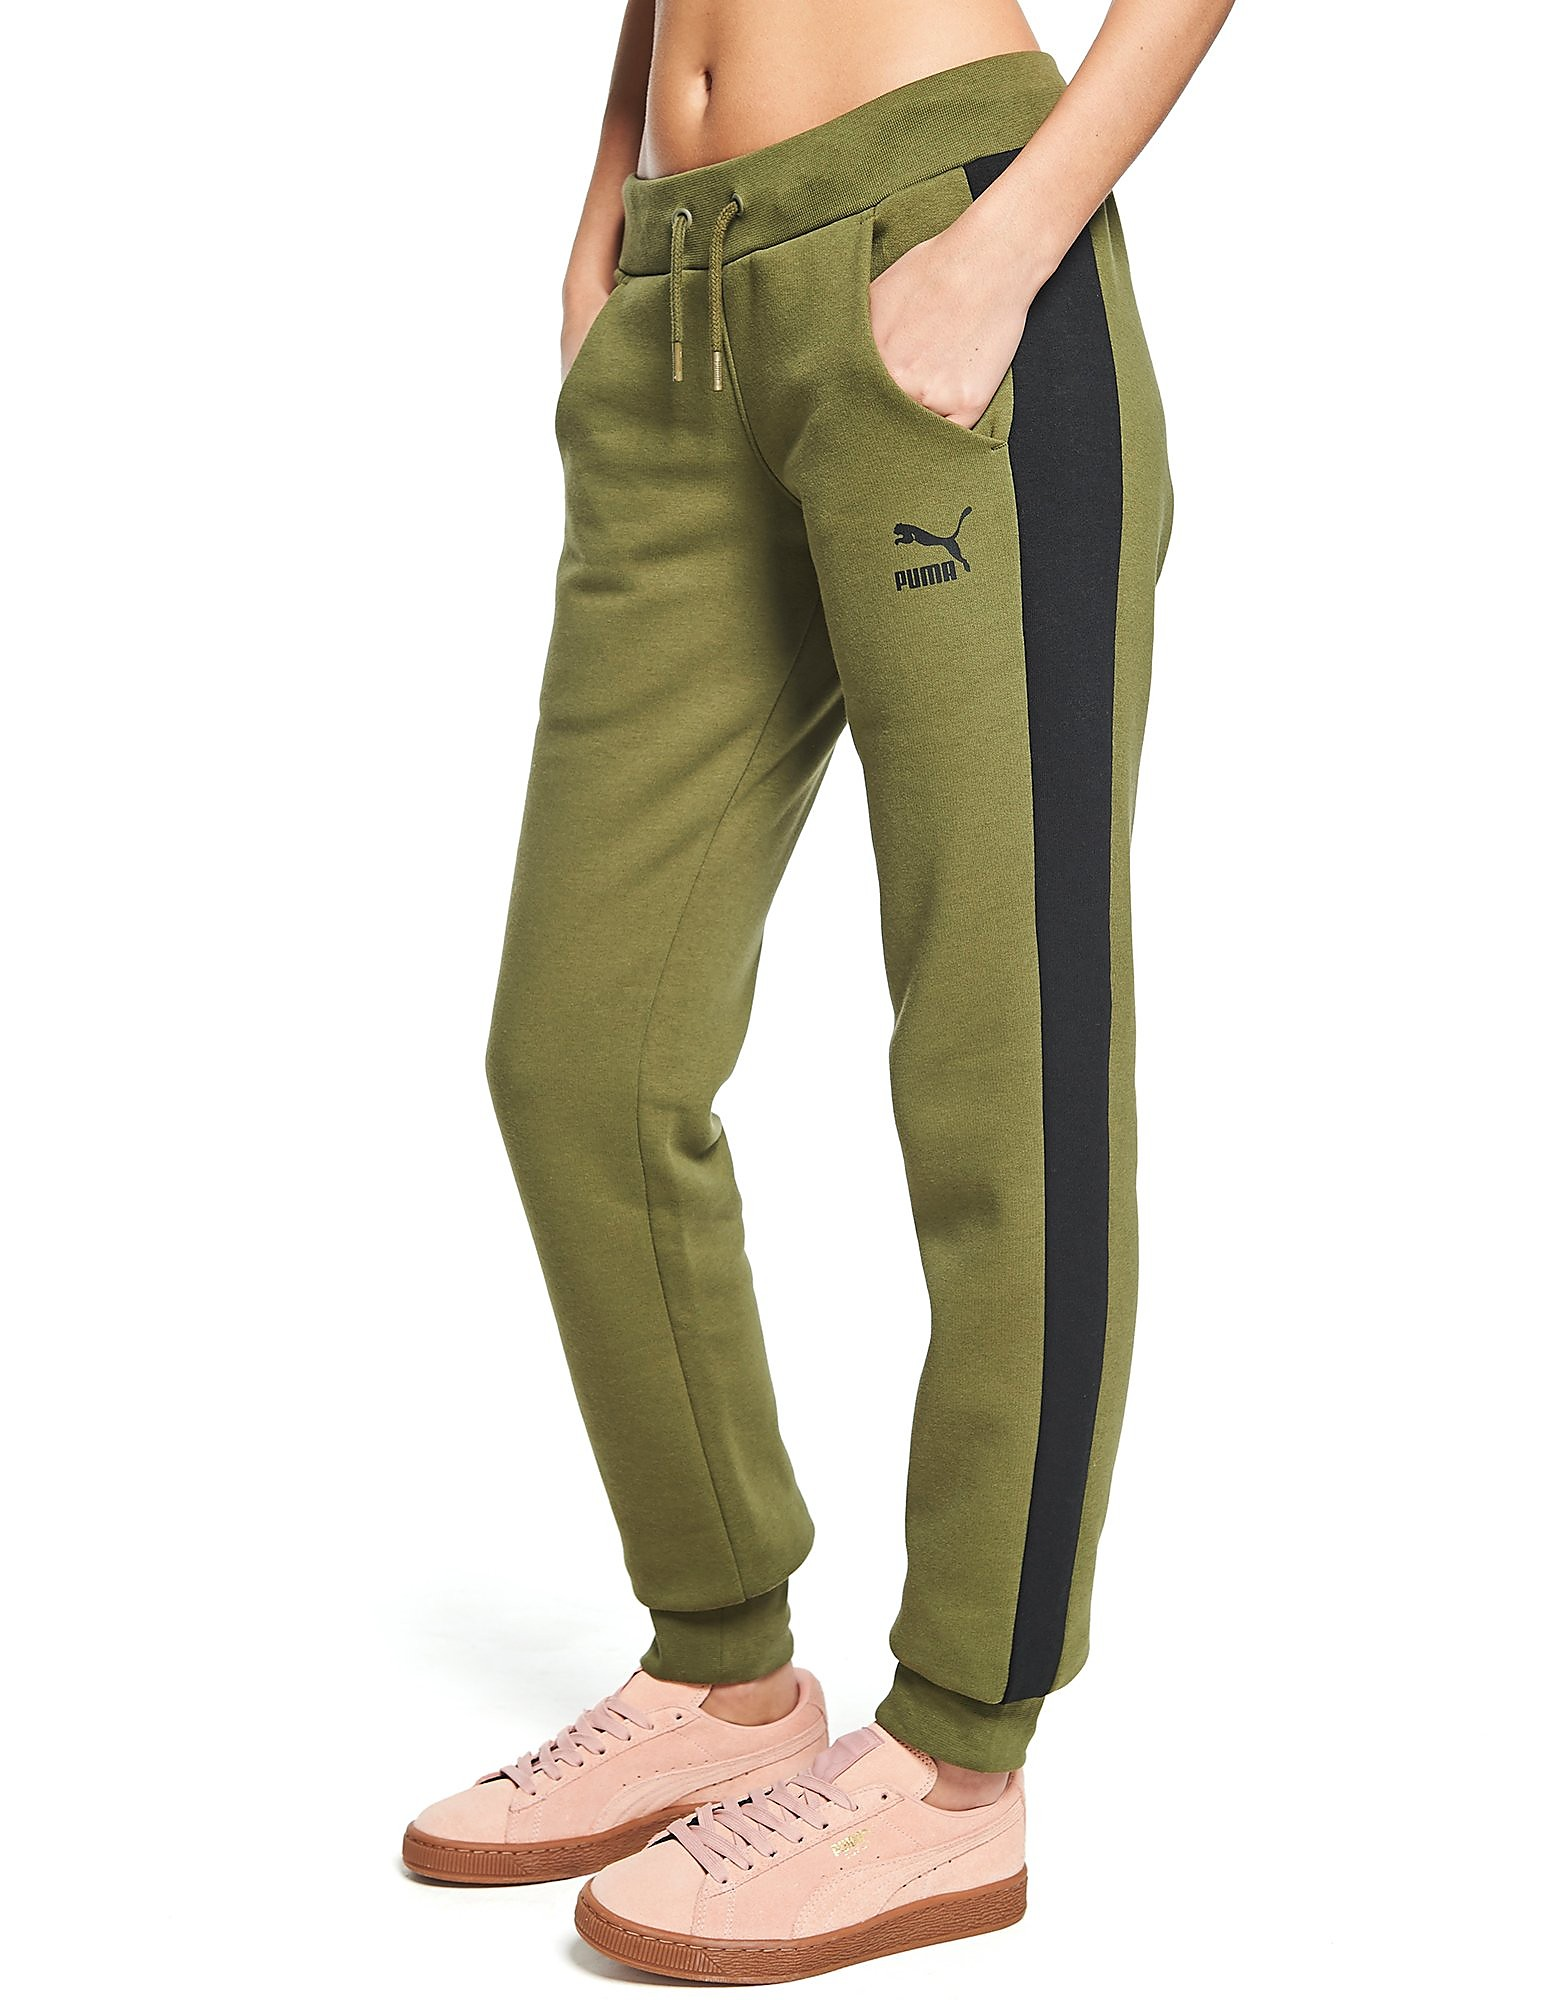 PUMA Panel Fleece Pants